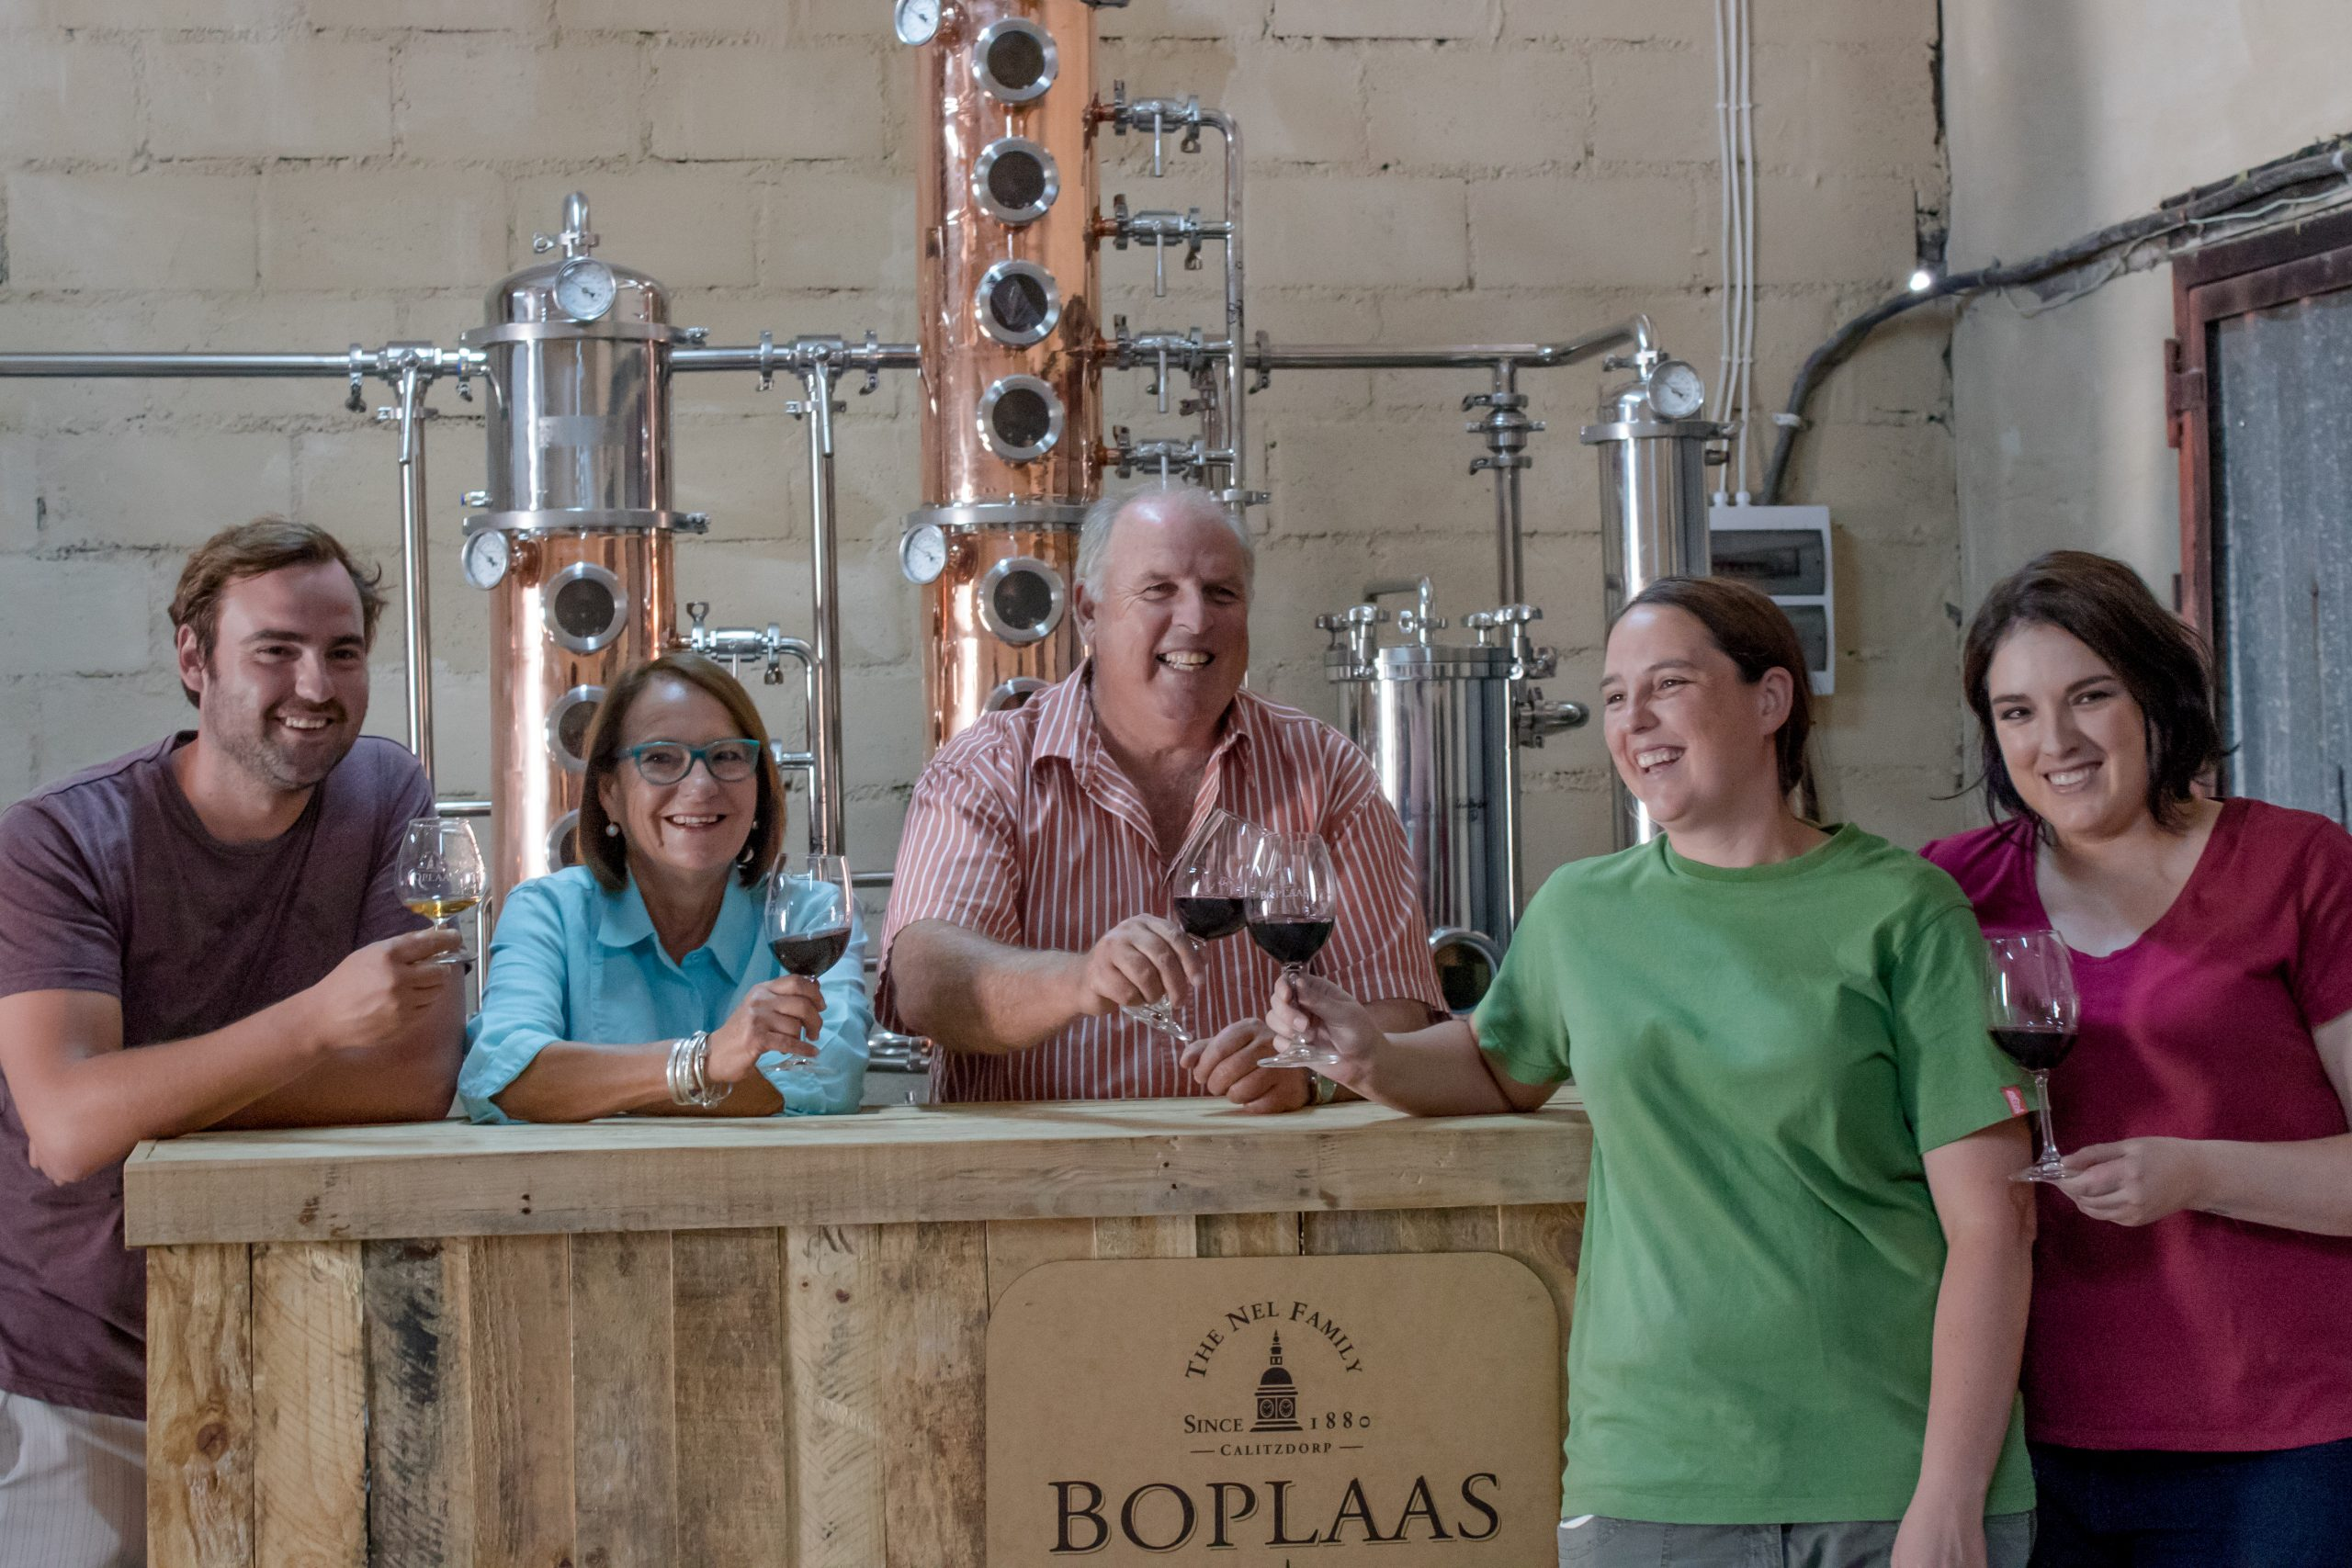 Boplaas Medals At Michelangelo Shine Light On Innovation And Legacy photo